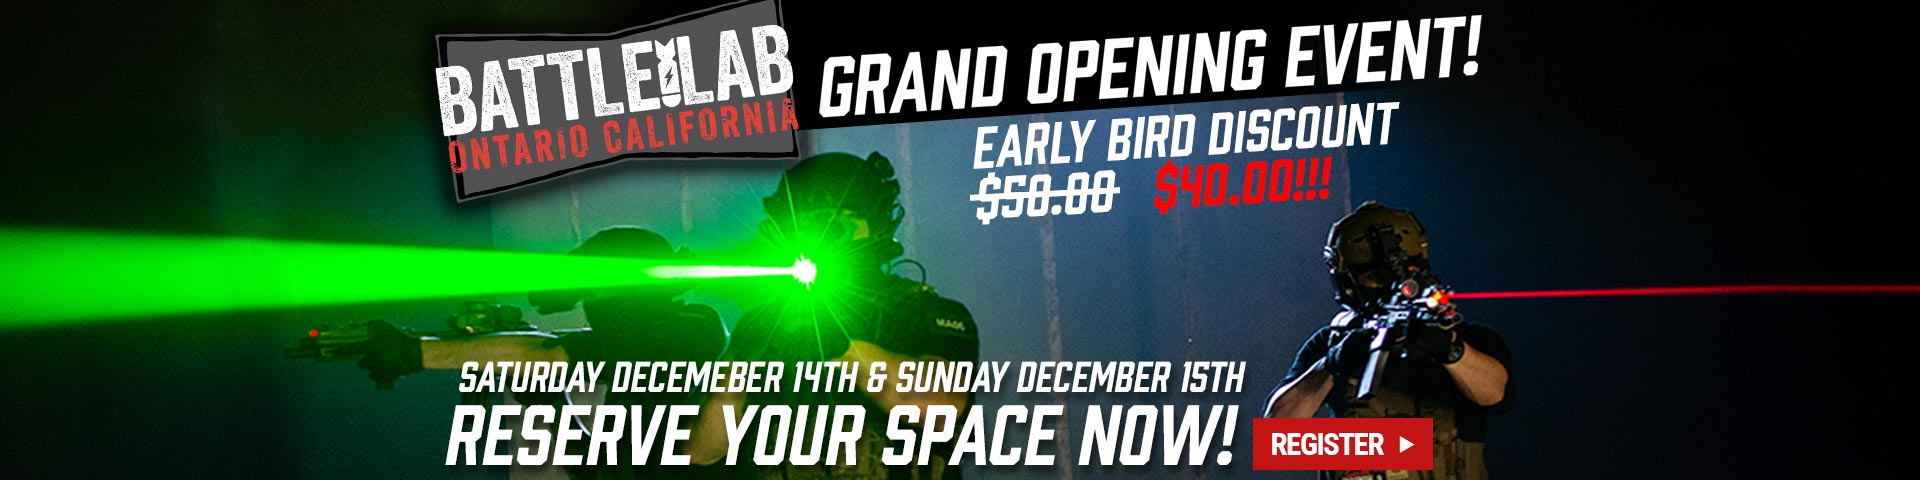 Battle Lab Grand Opening